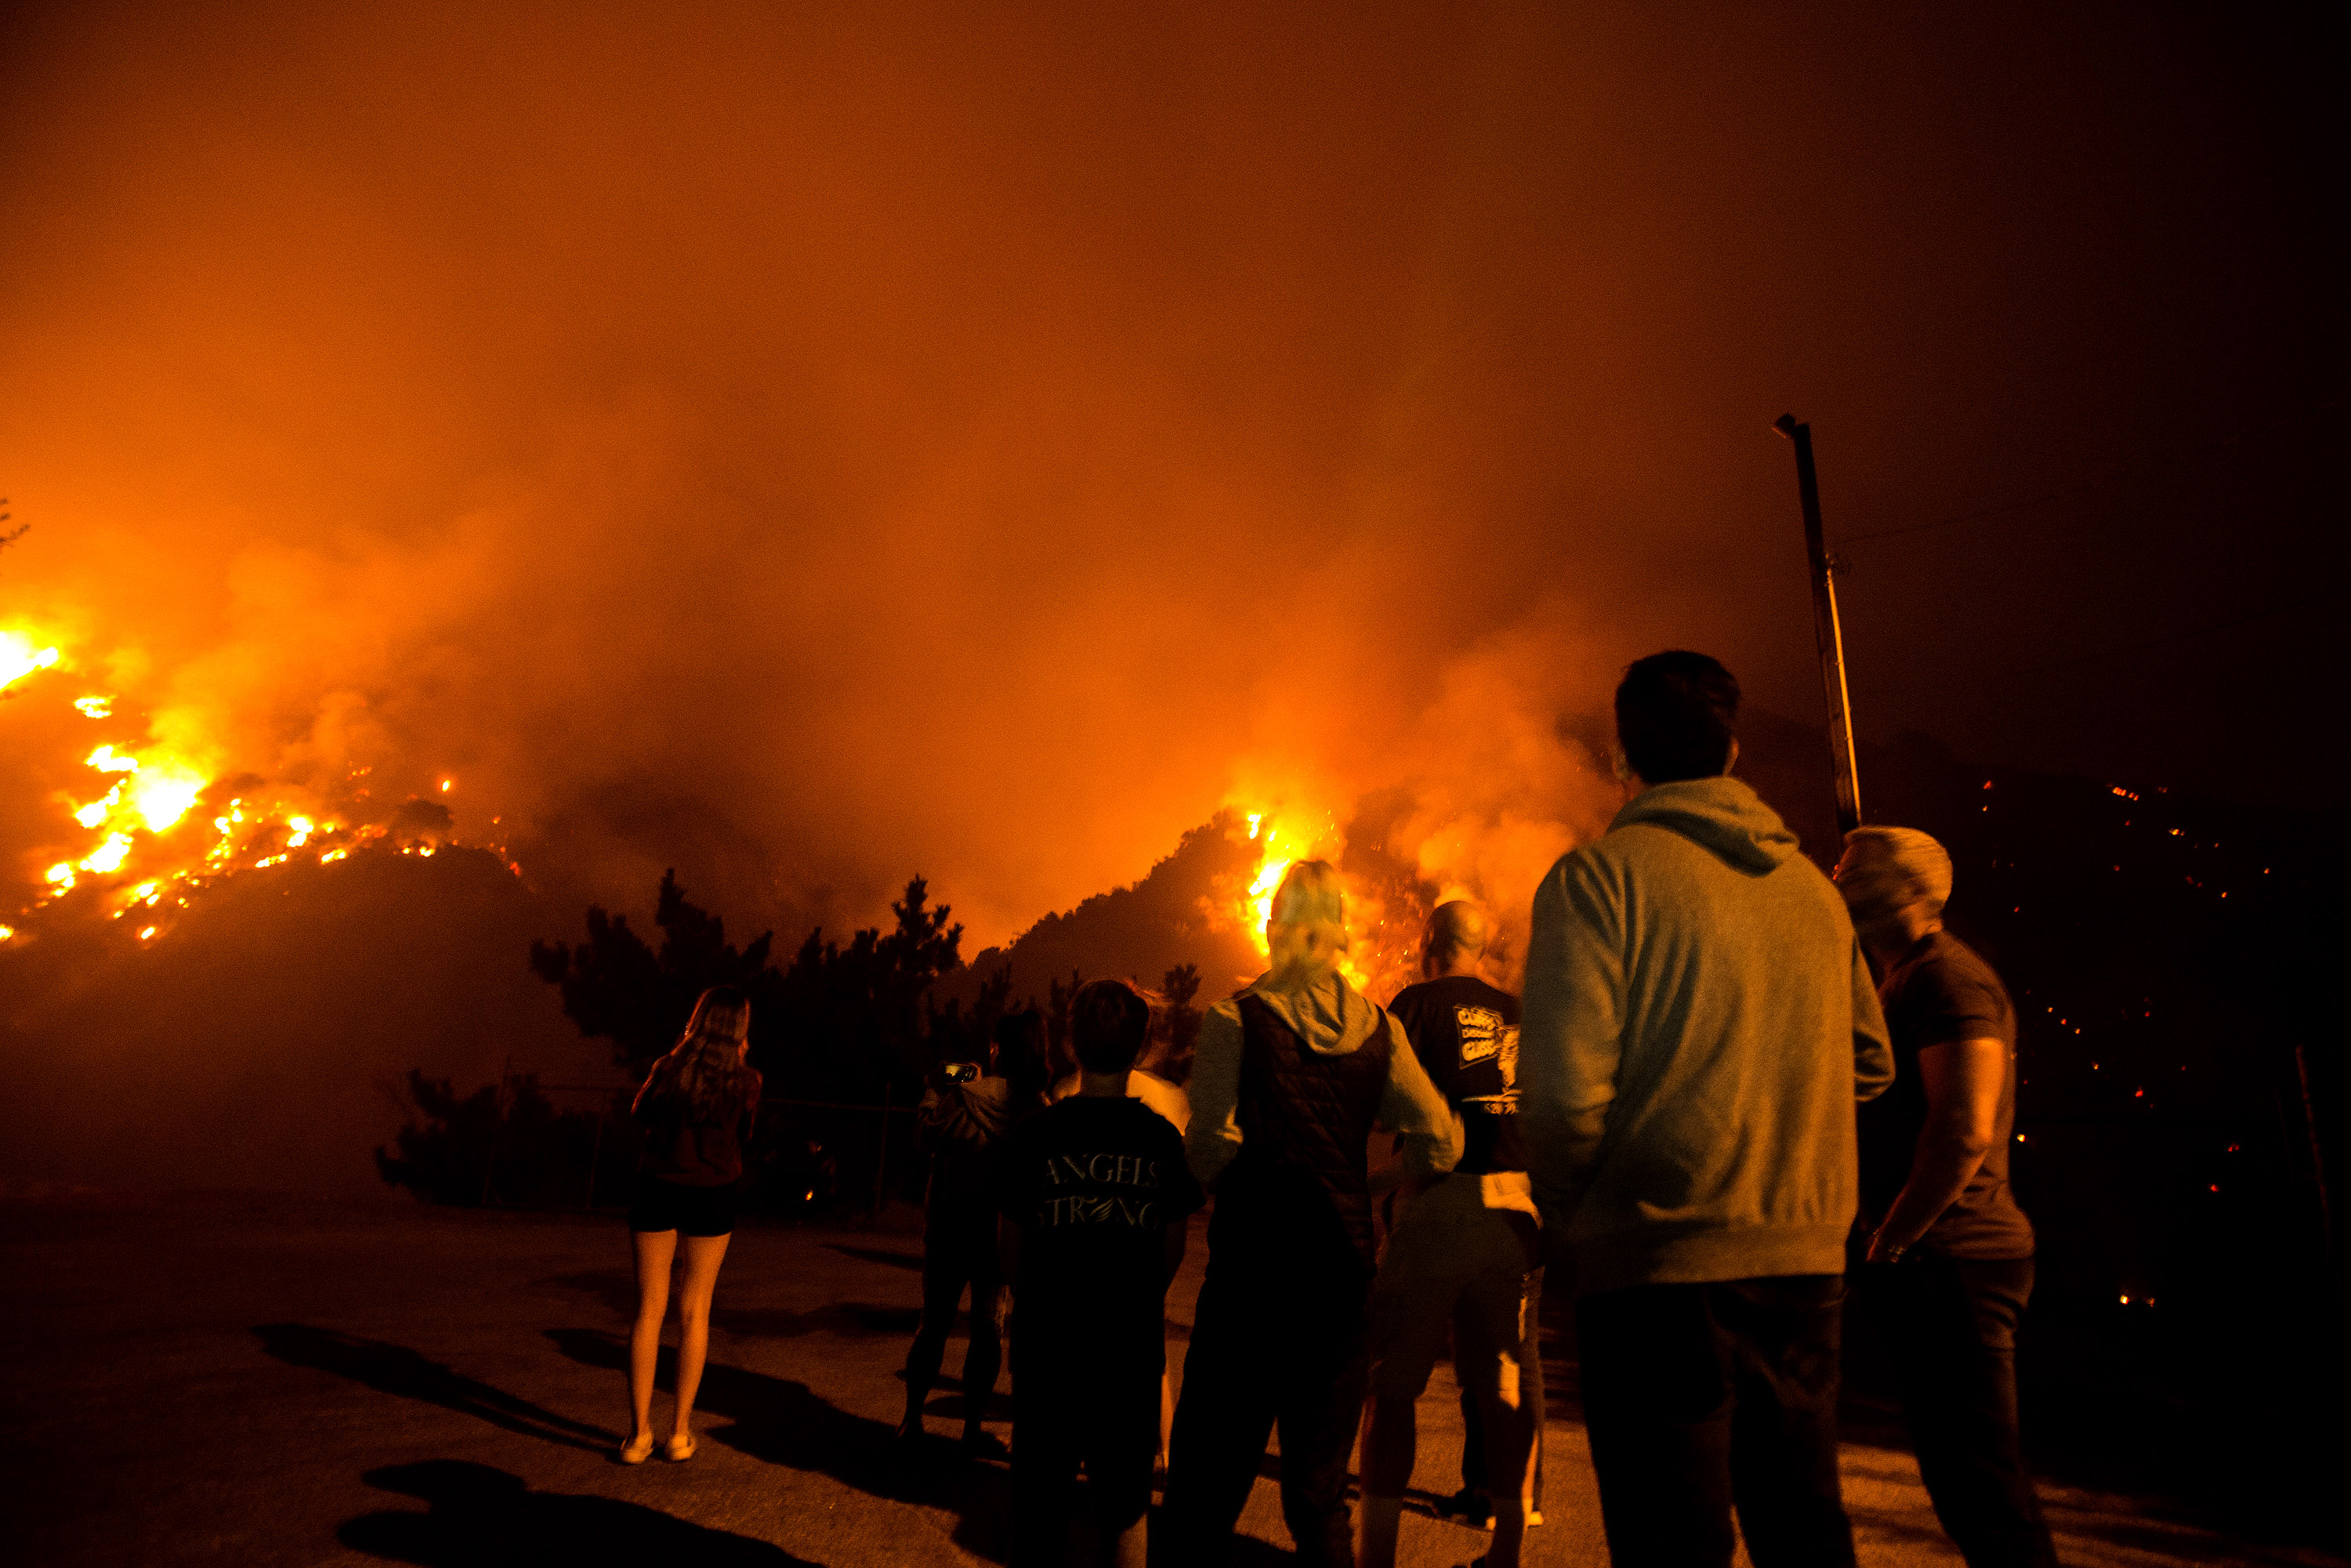 Oregon, scorched by fire, braces for floods as California blaze prompts more evacuations